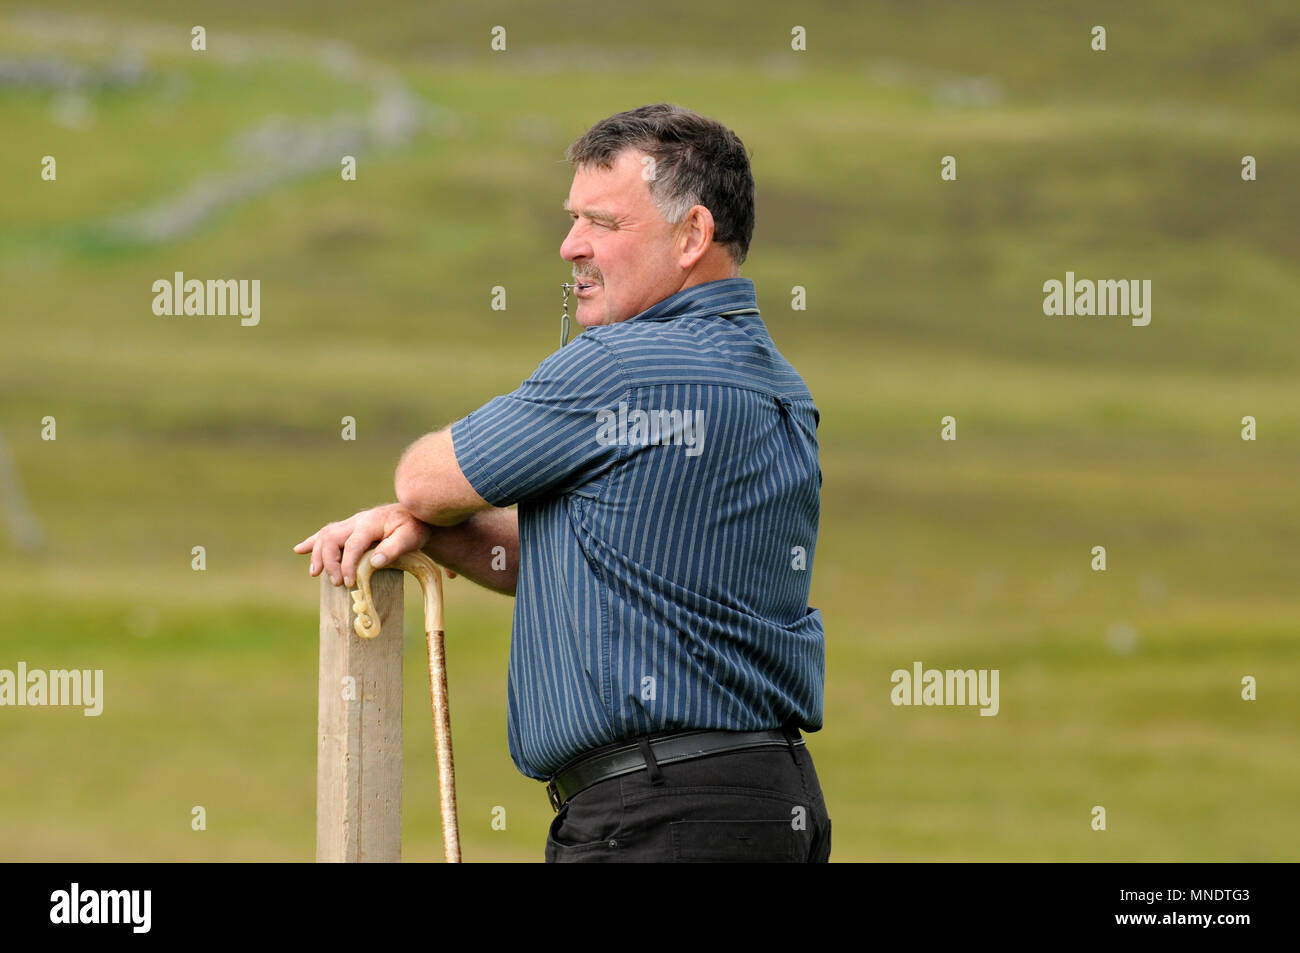 Whistle Mouth Stock Photos & Whistle Mouth Stock Images - Alamy